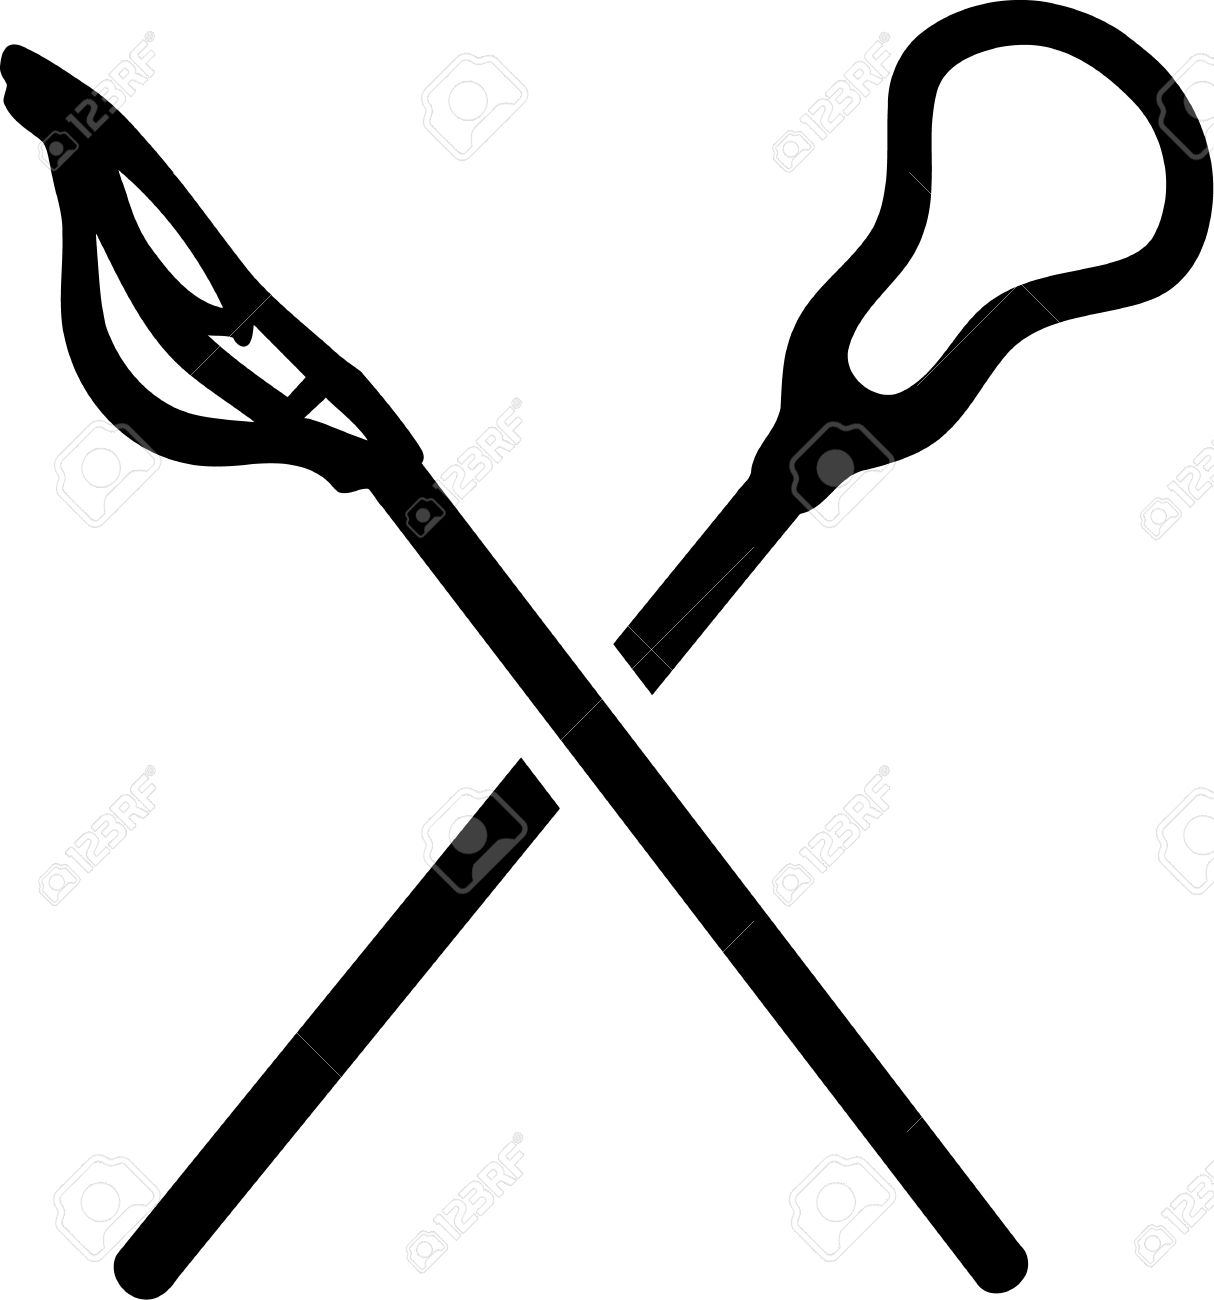 lacrosse sticks icon royalty free cliparts vectors and stock rh 123rf com lacrosse stick clip art black white